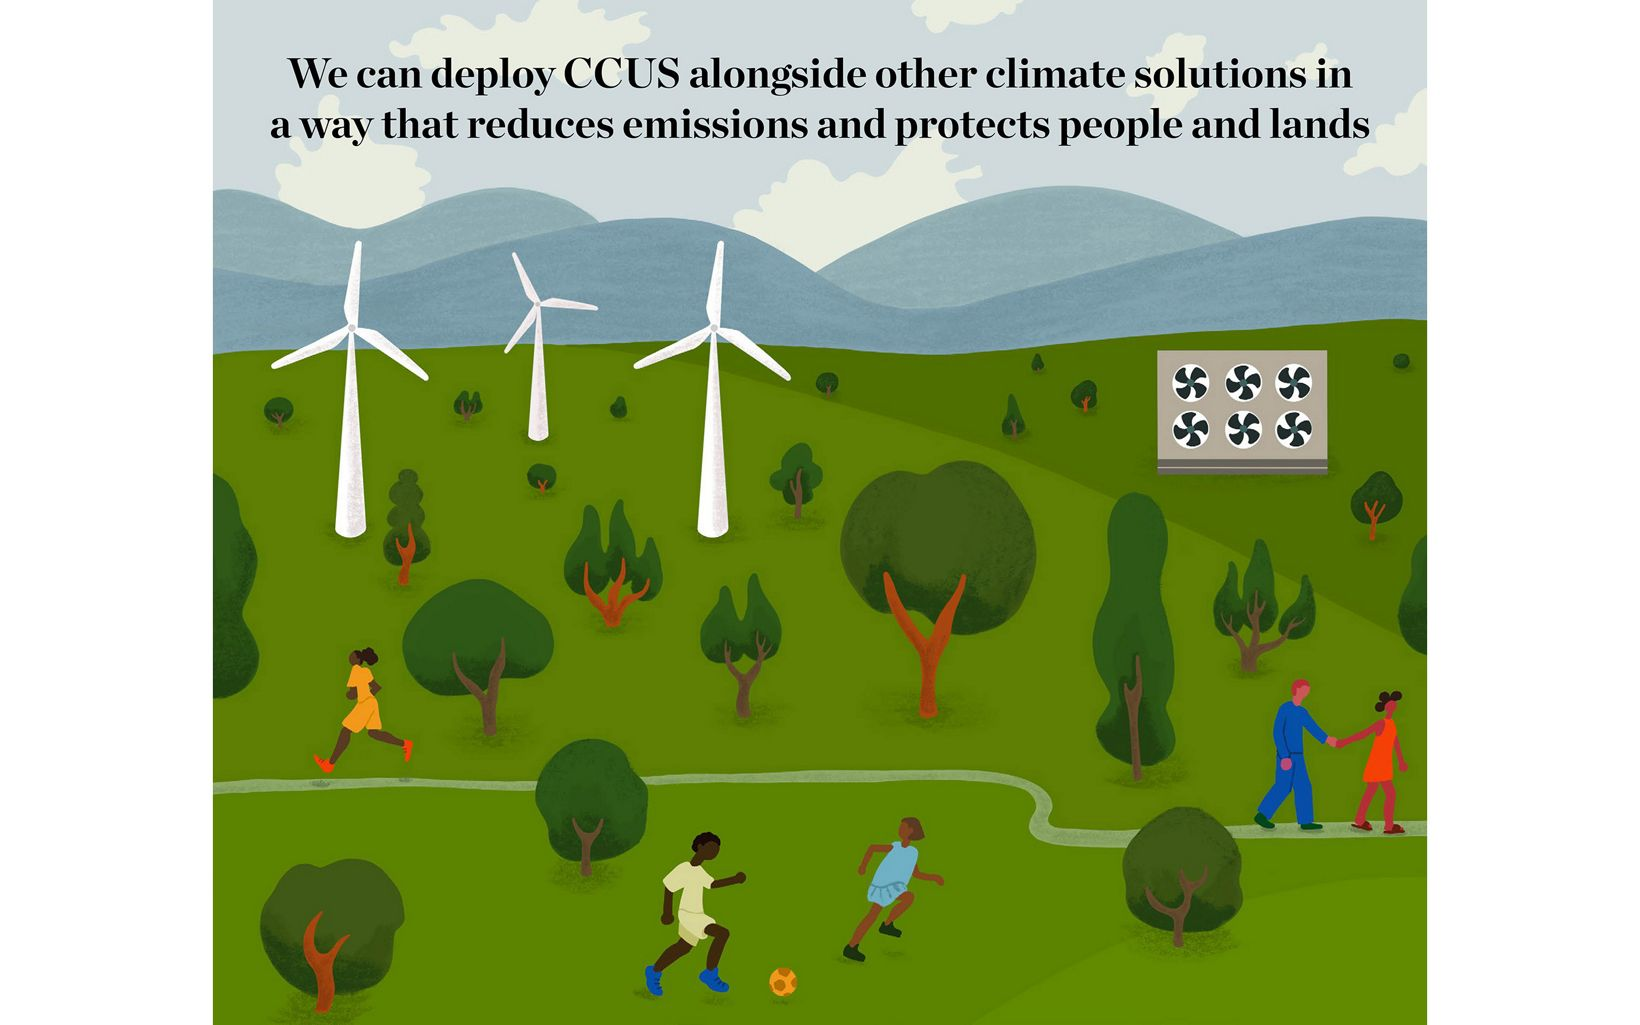 Illustration of an outdoor scene showing wind turbines, trees, mountains and people recreating in the foreground.